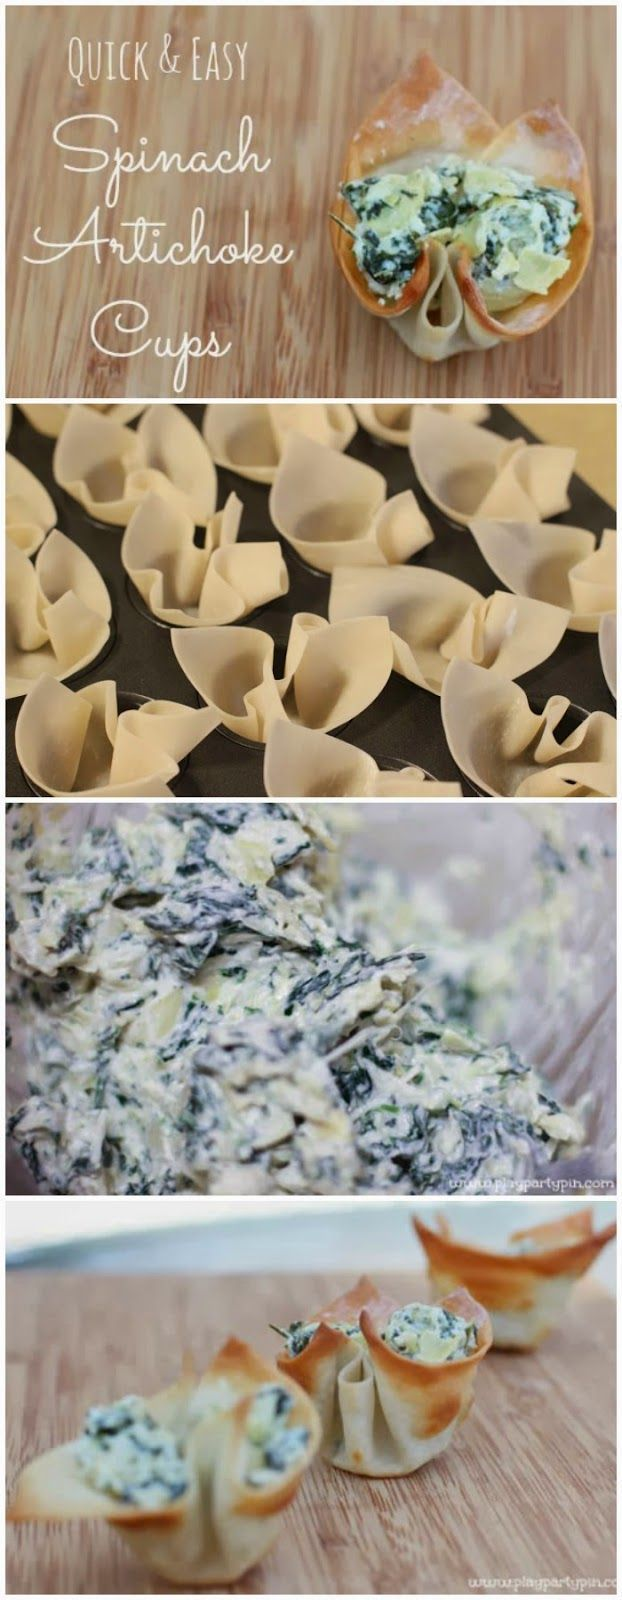 The Best Spinach Artichoke Cups - Play Party Plan